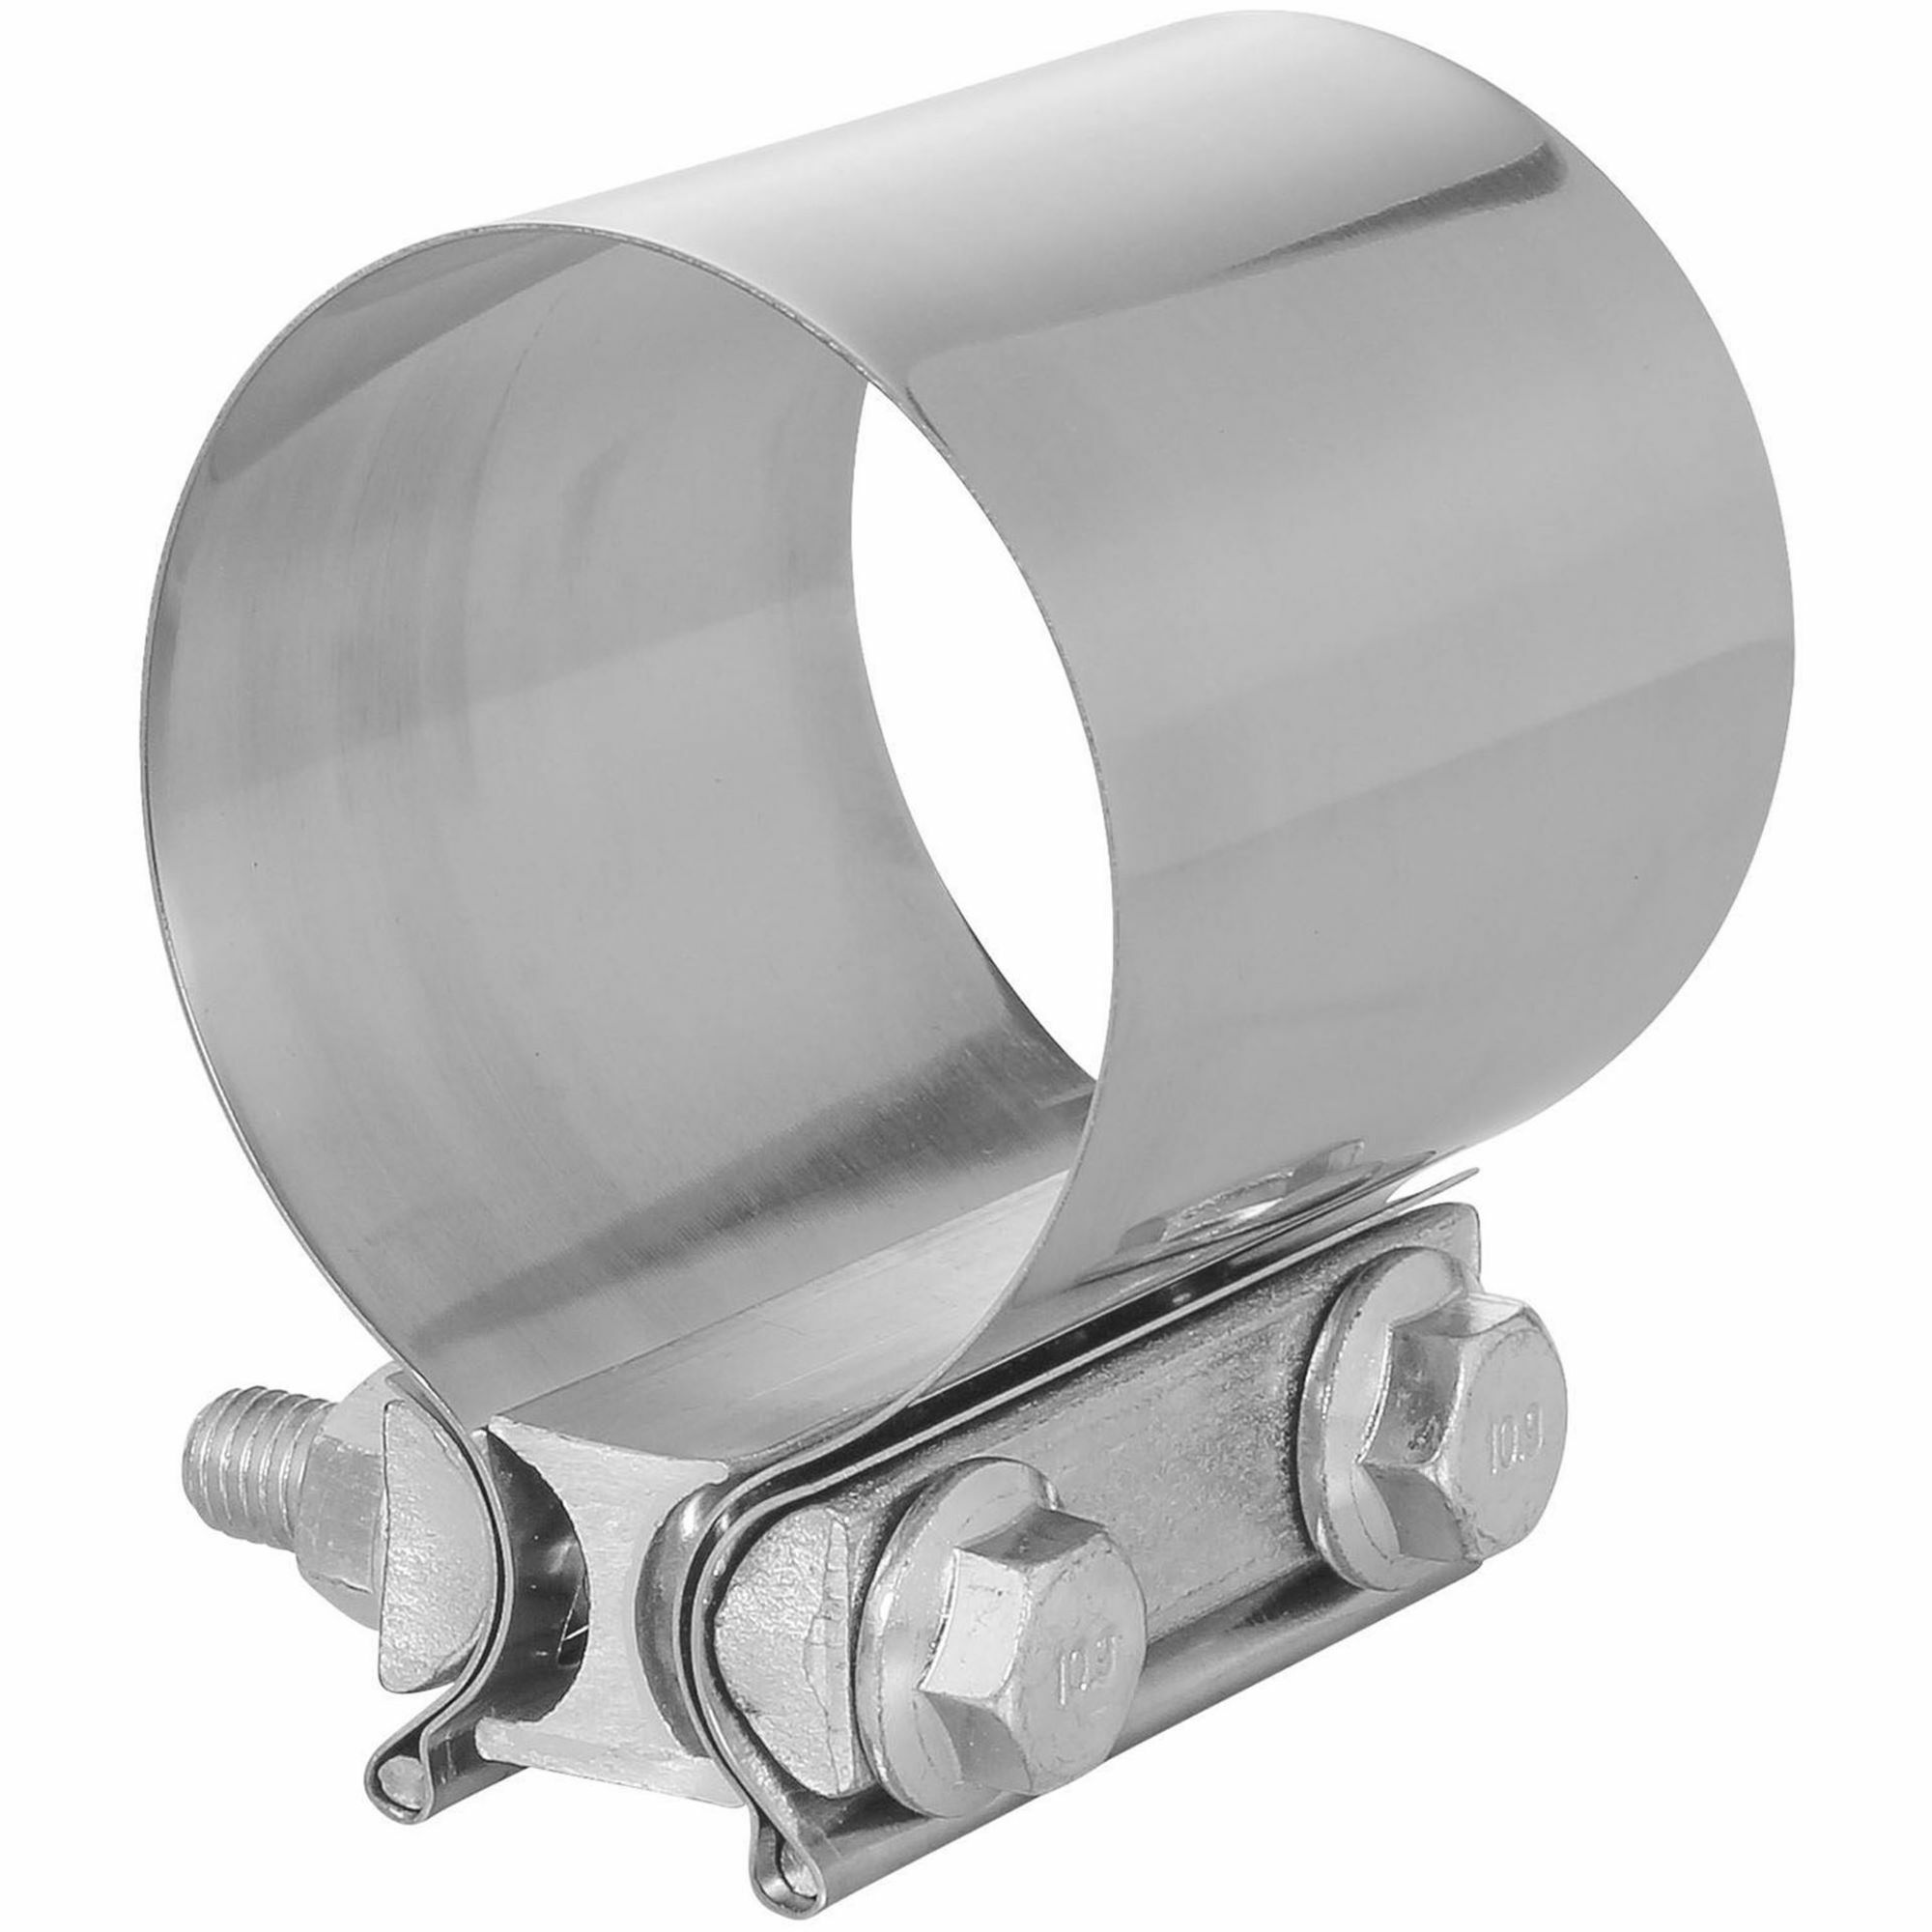 TOTALFLOW TF-JB58 Butt Joint Exhaust Muffler Clamp Band   2.5 Inch